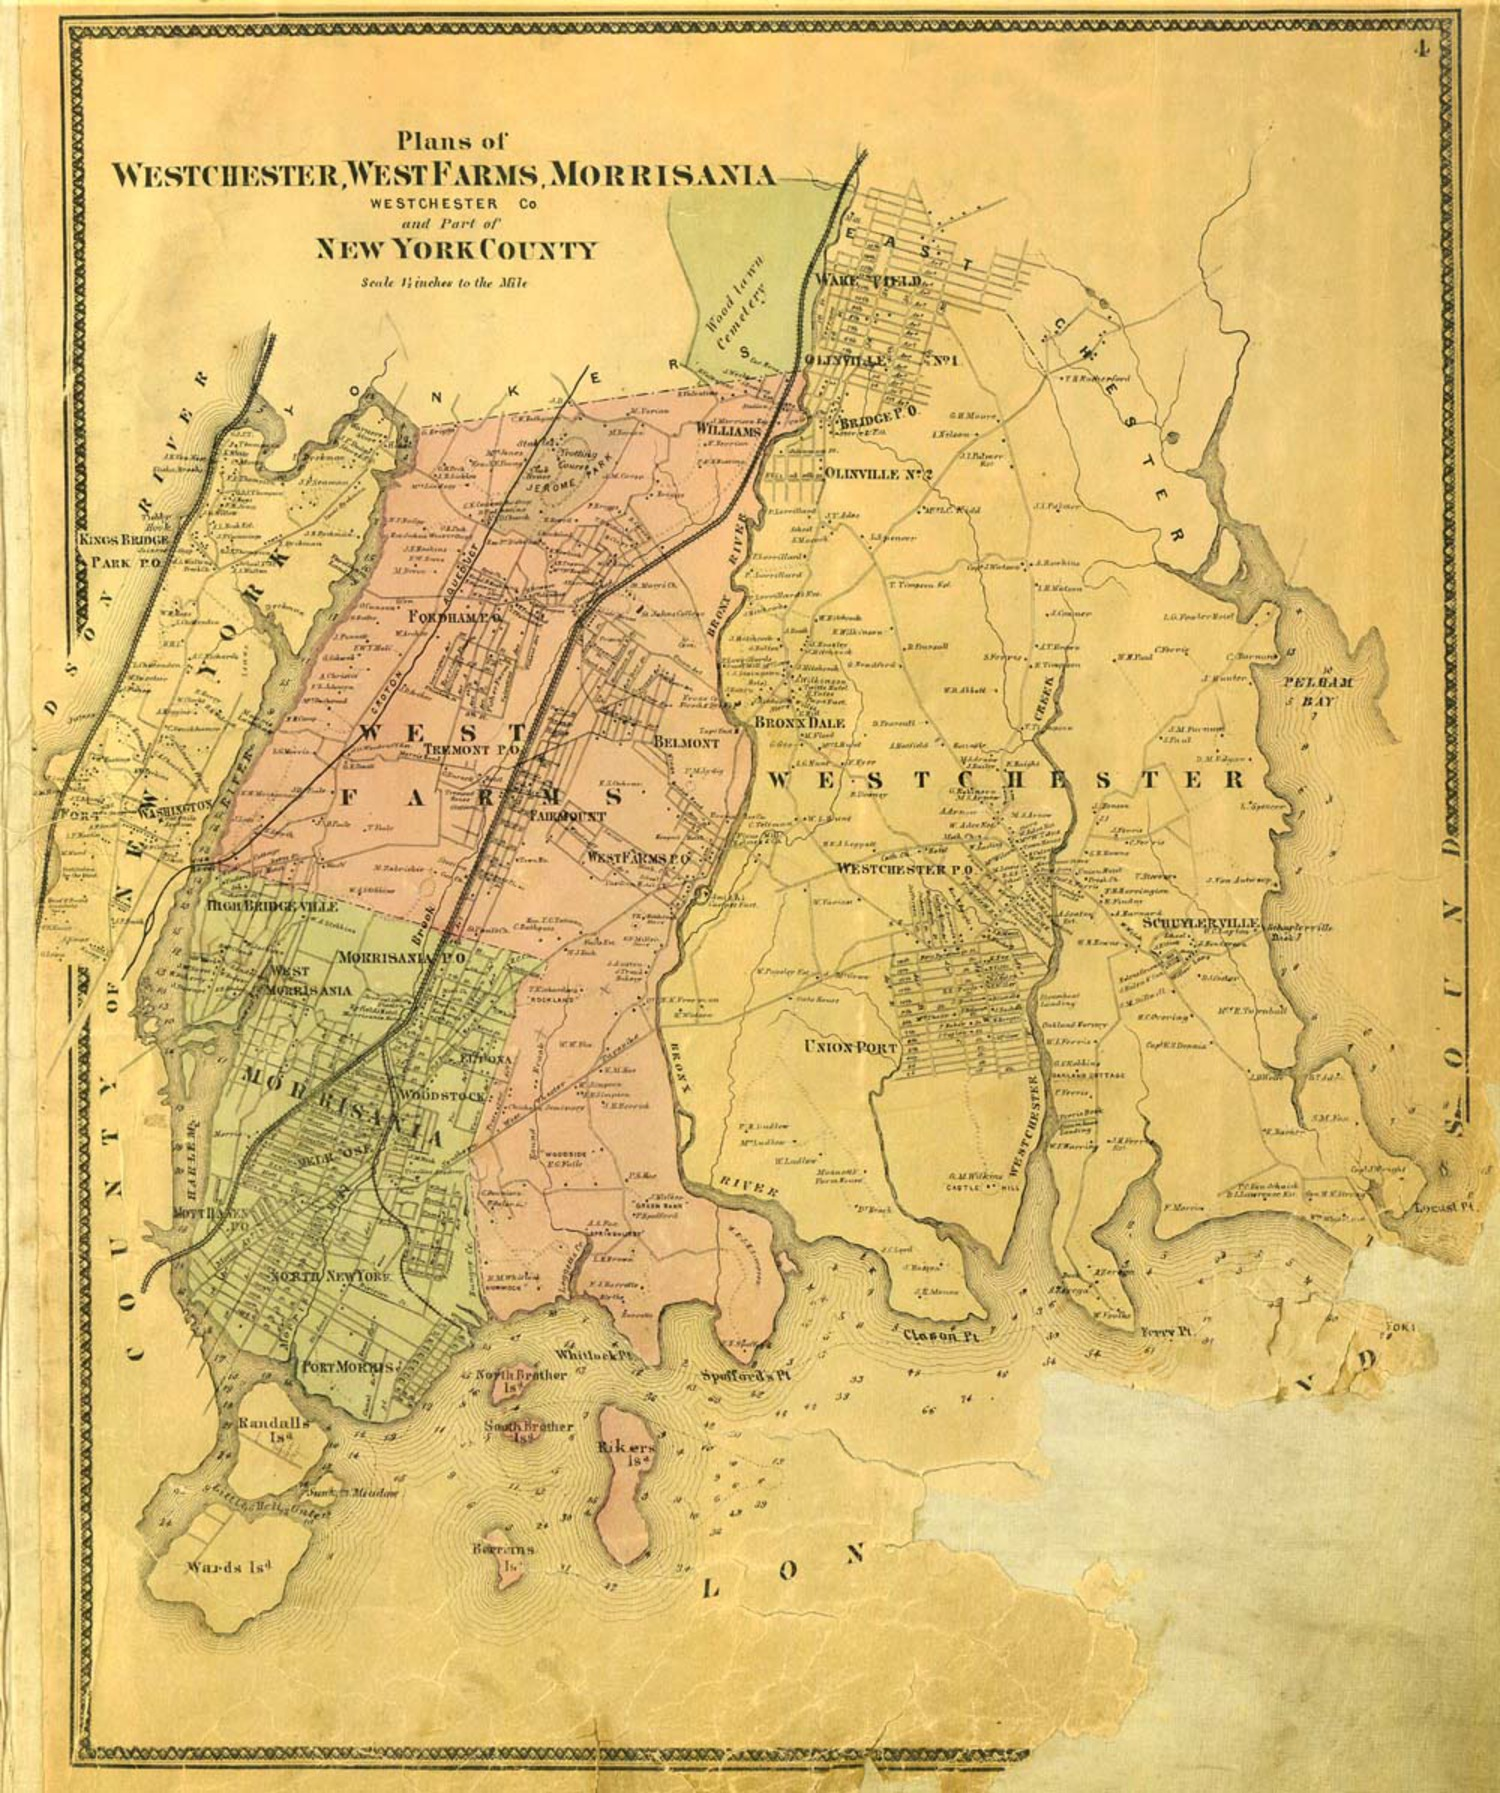 """Westchester, West Farms, and Morrisania"" from the Atlas of New York and Vicinity"